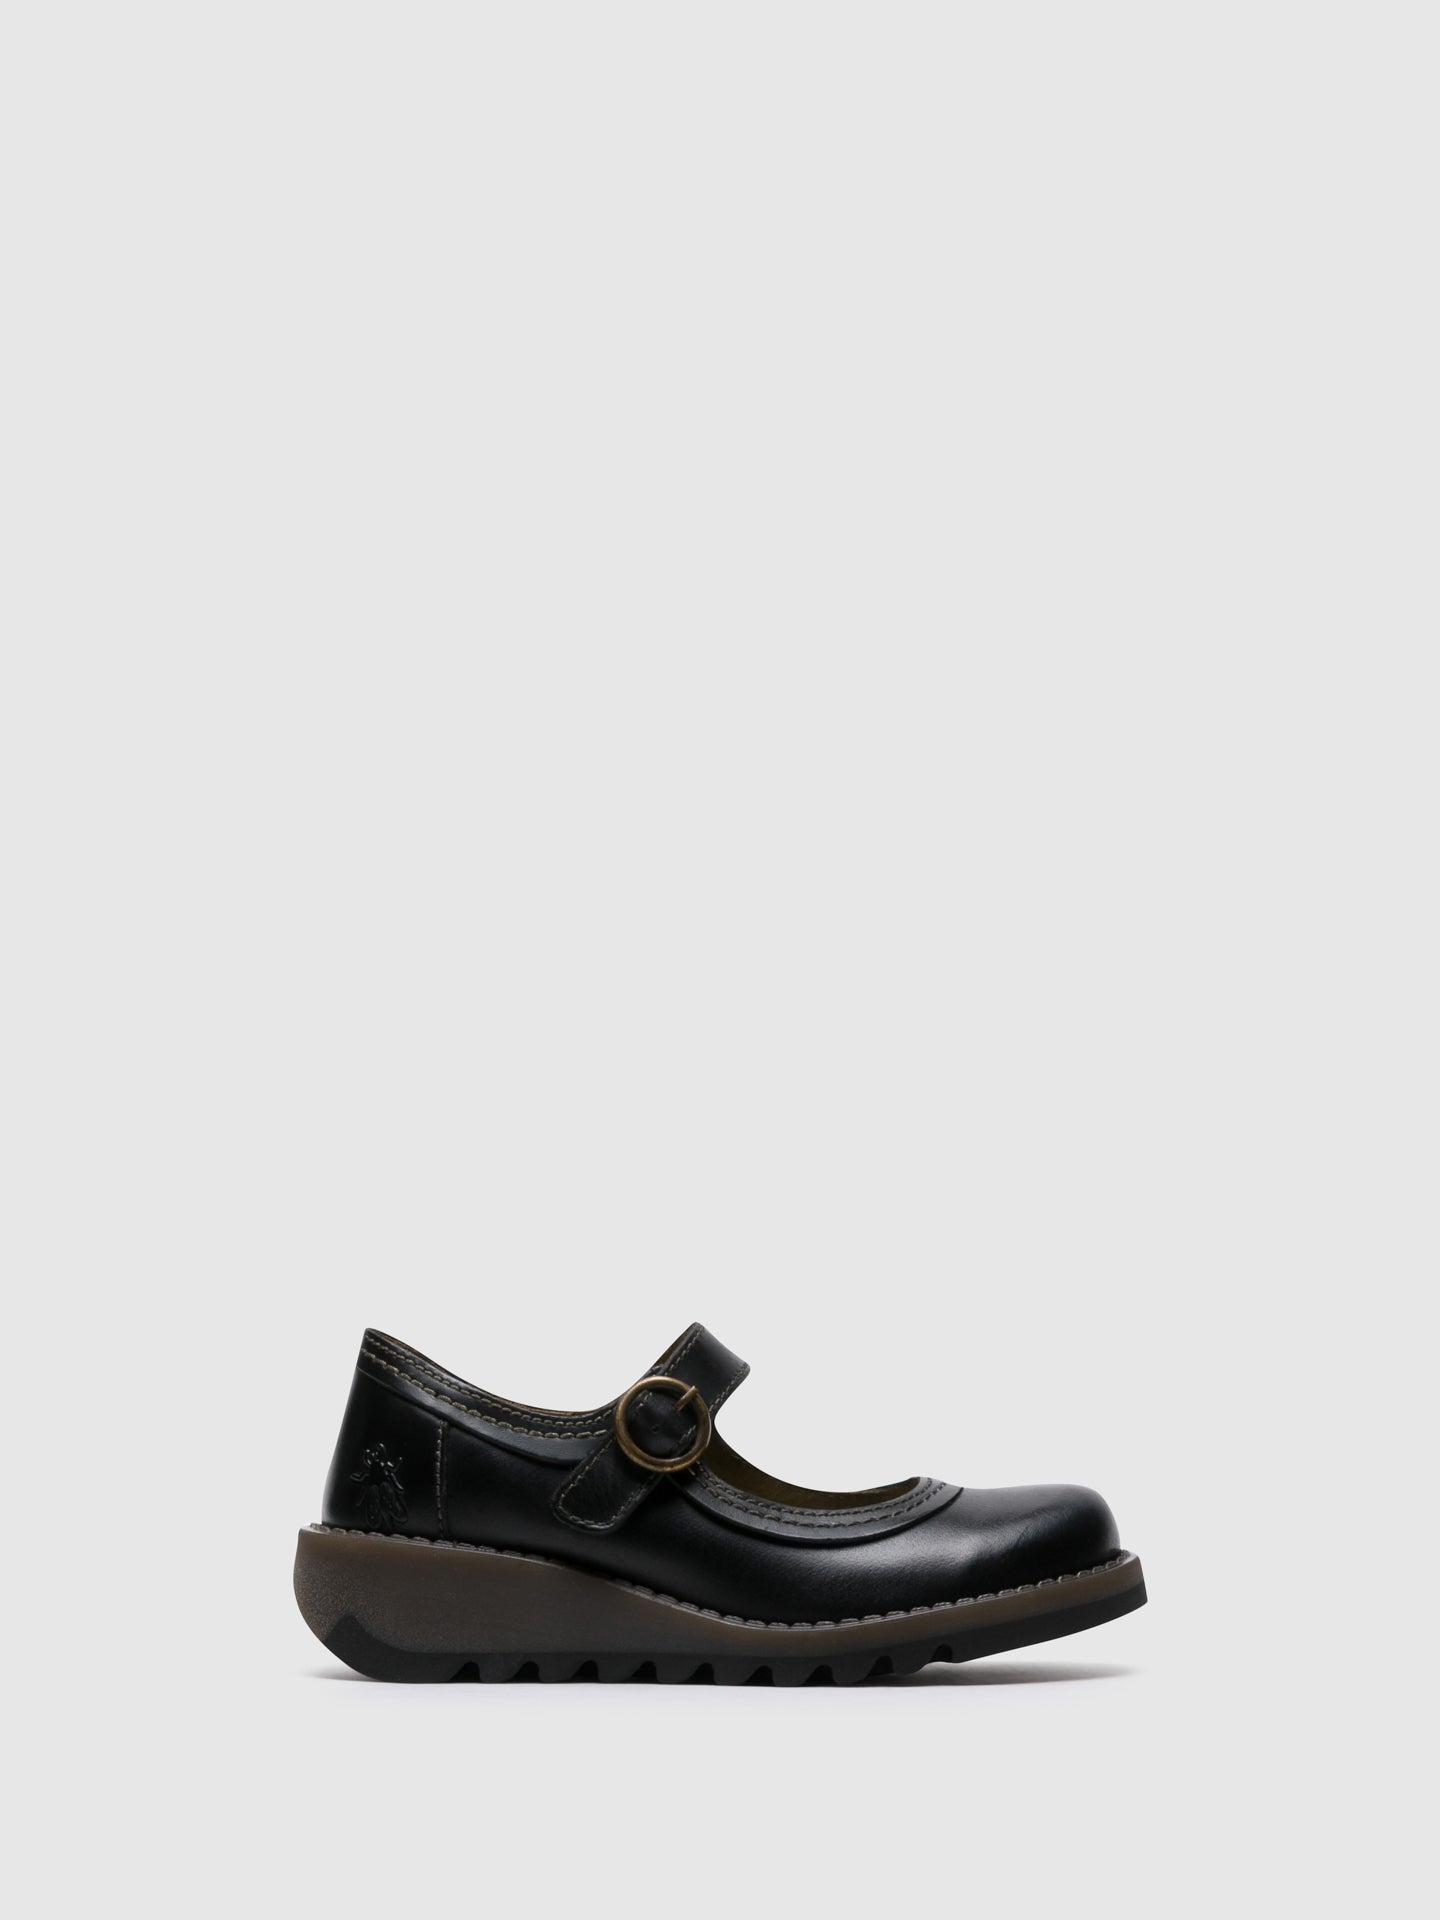 Fly London Gloss Black Monk